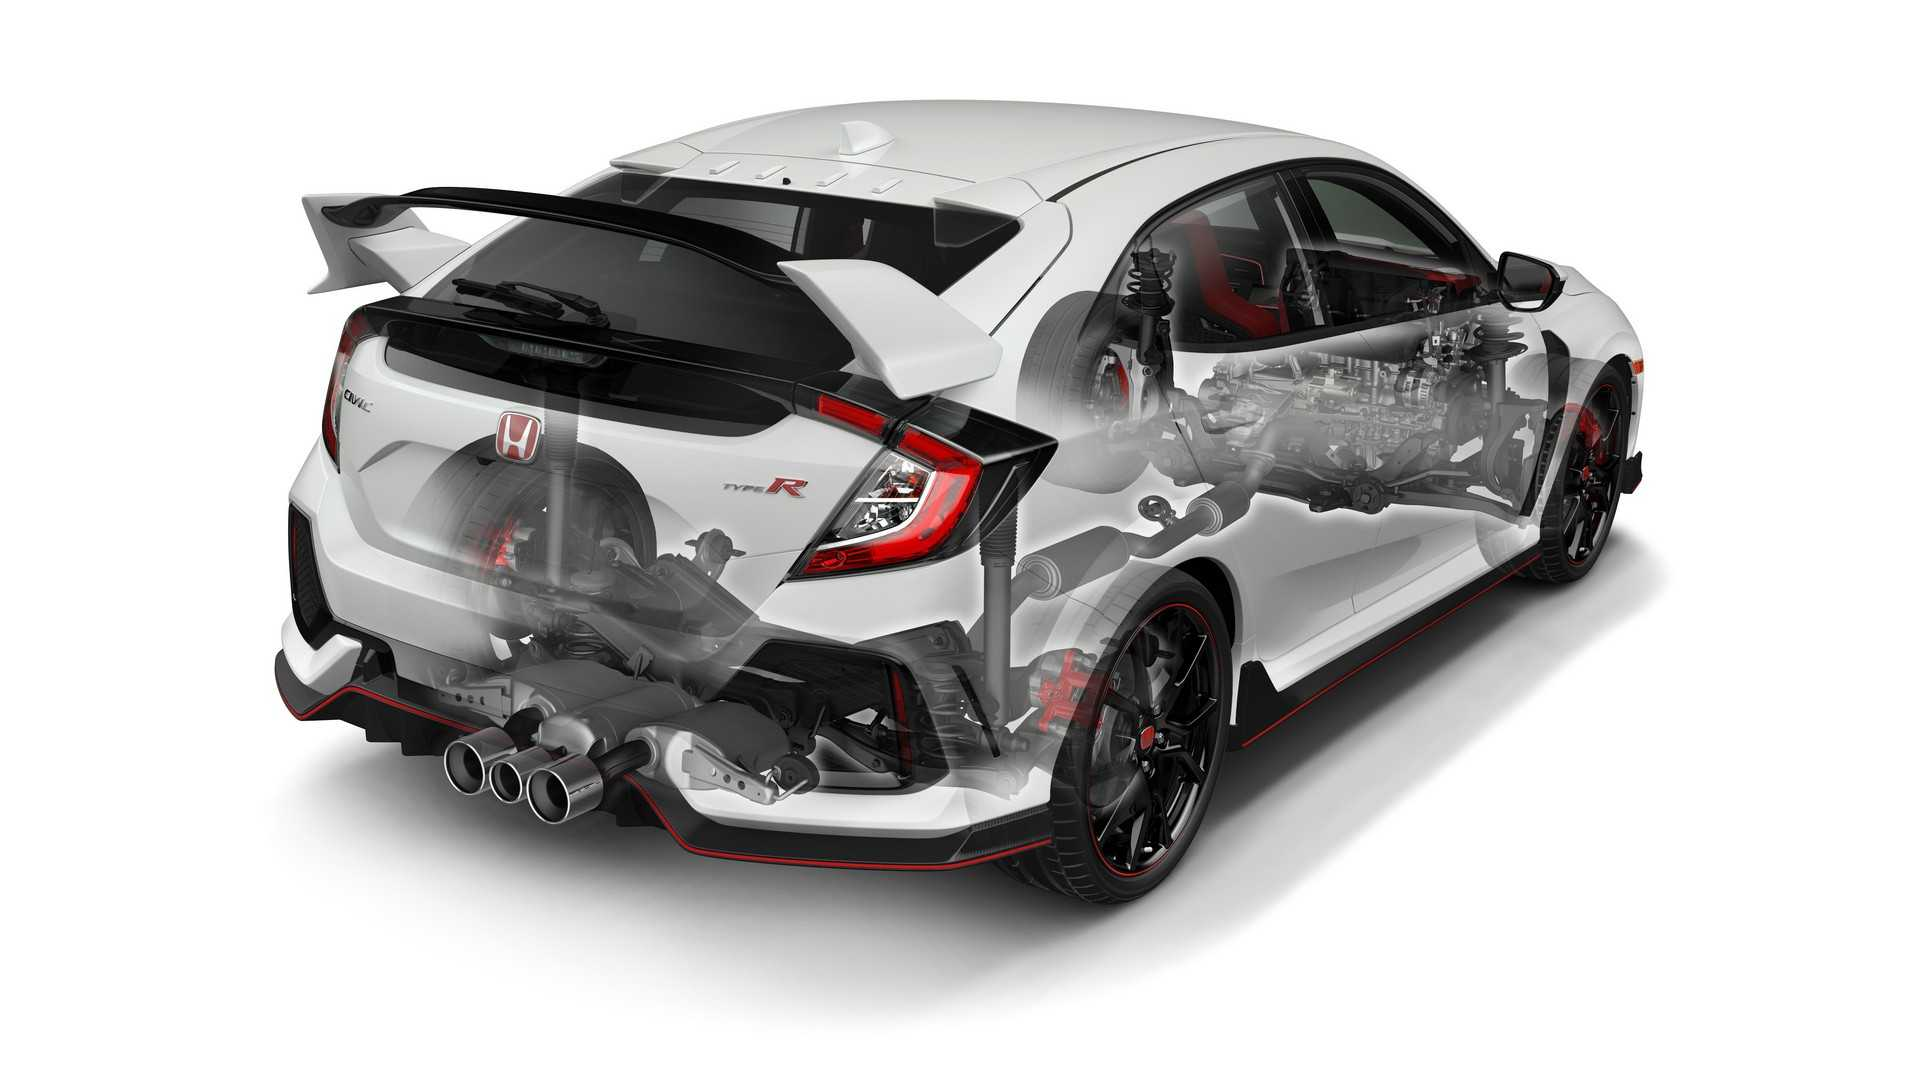 73 The 2019 Honda Civic Type R Prices